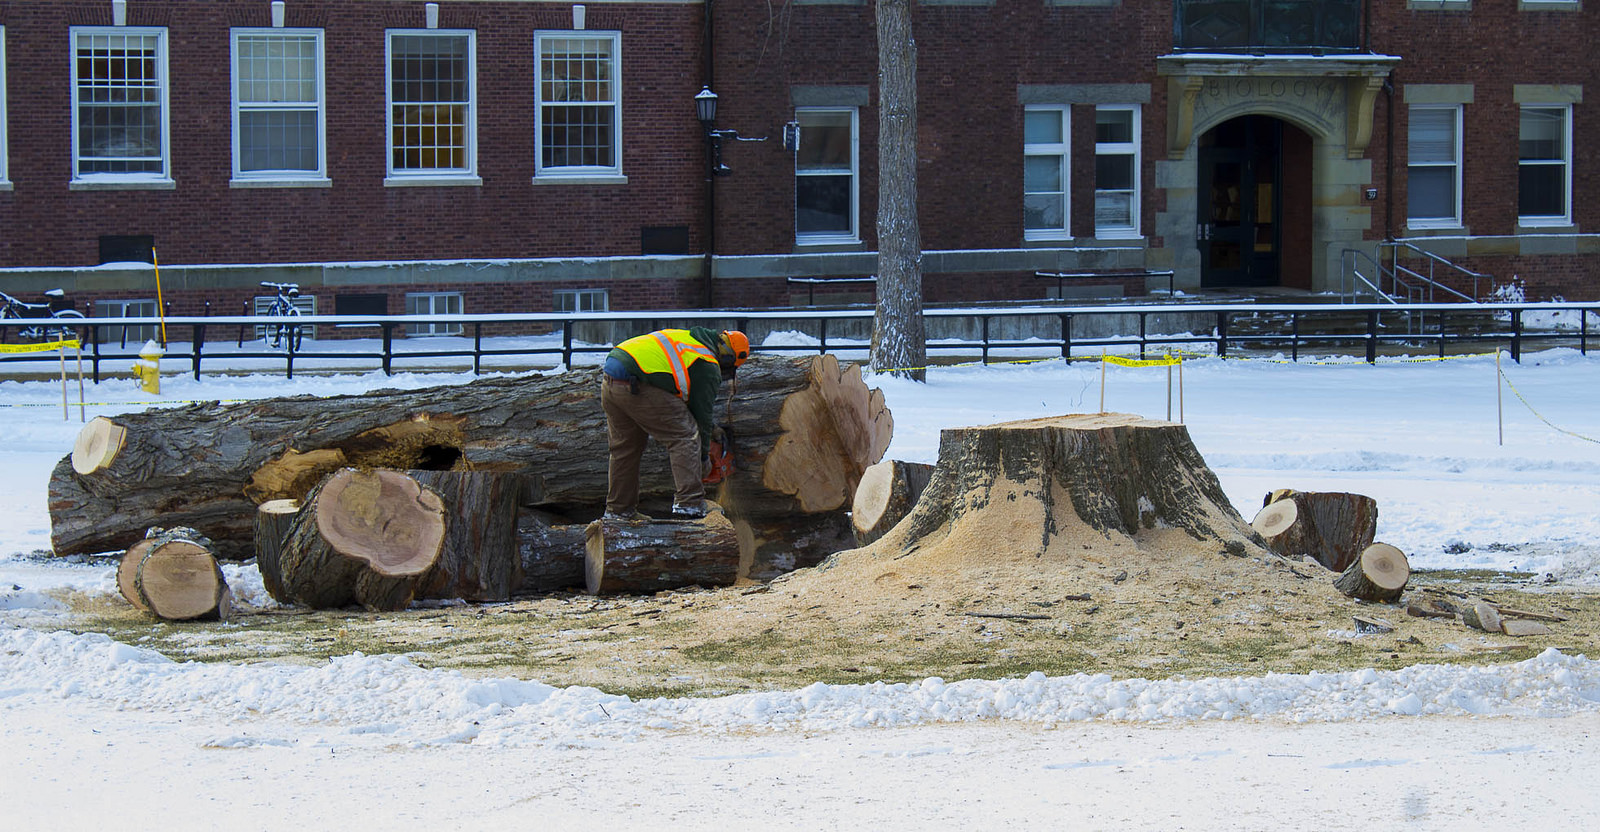 The science quad sugar maple is deconstructed, January 9, 2015. Photo by Cecilia Castellano '16